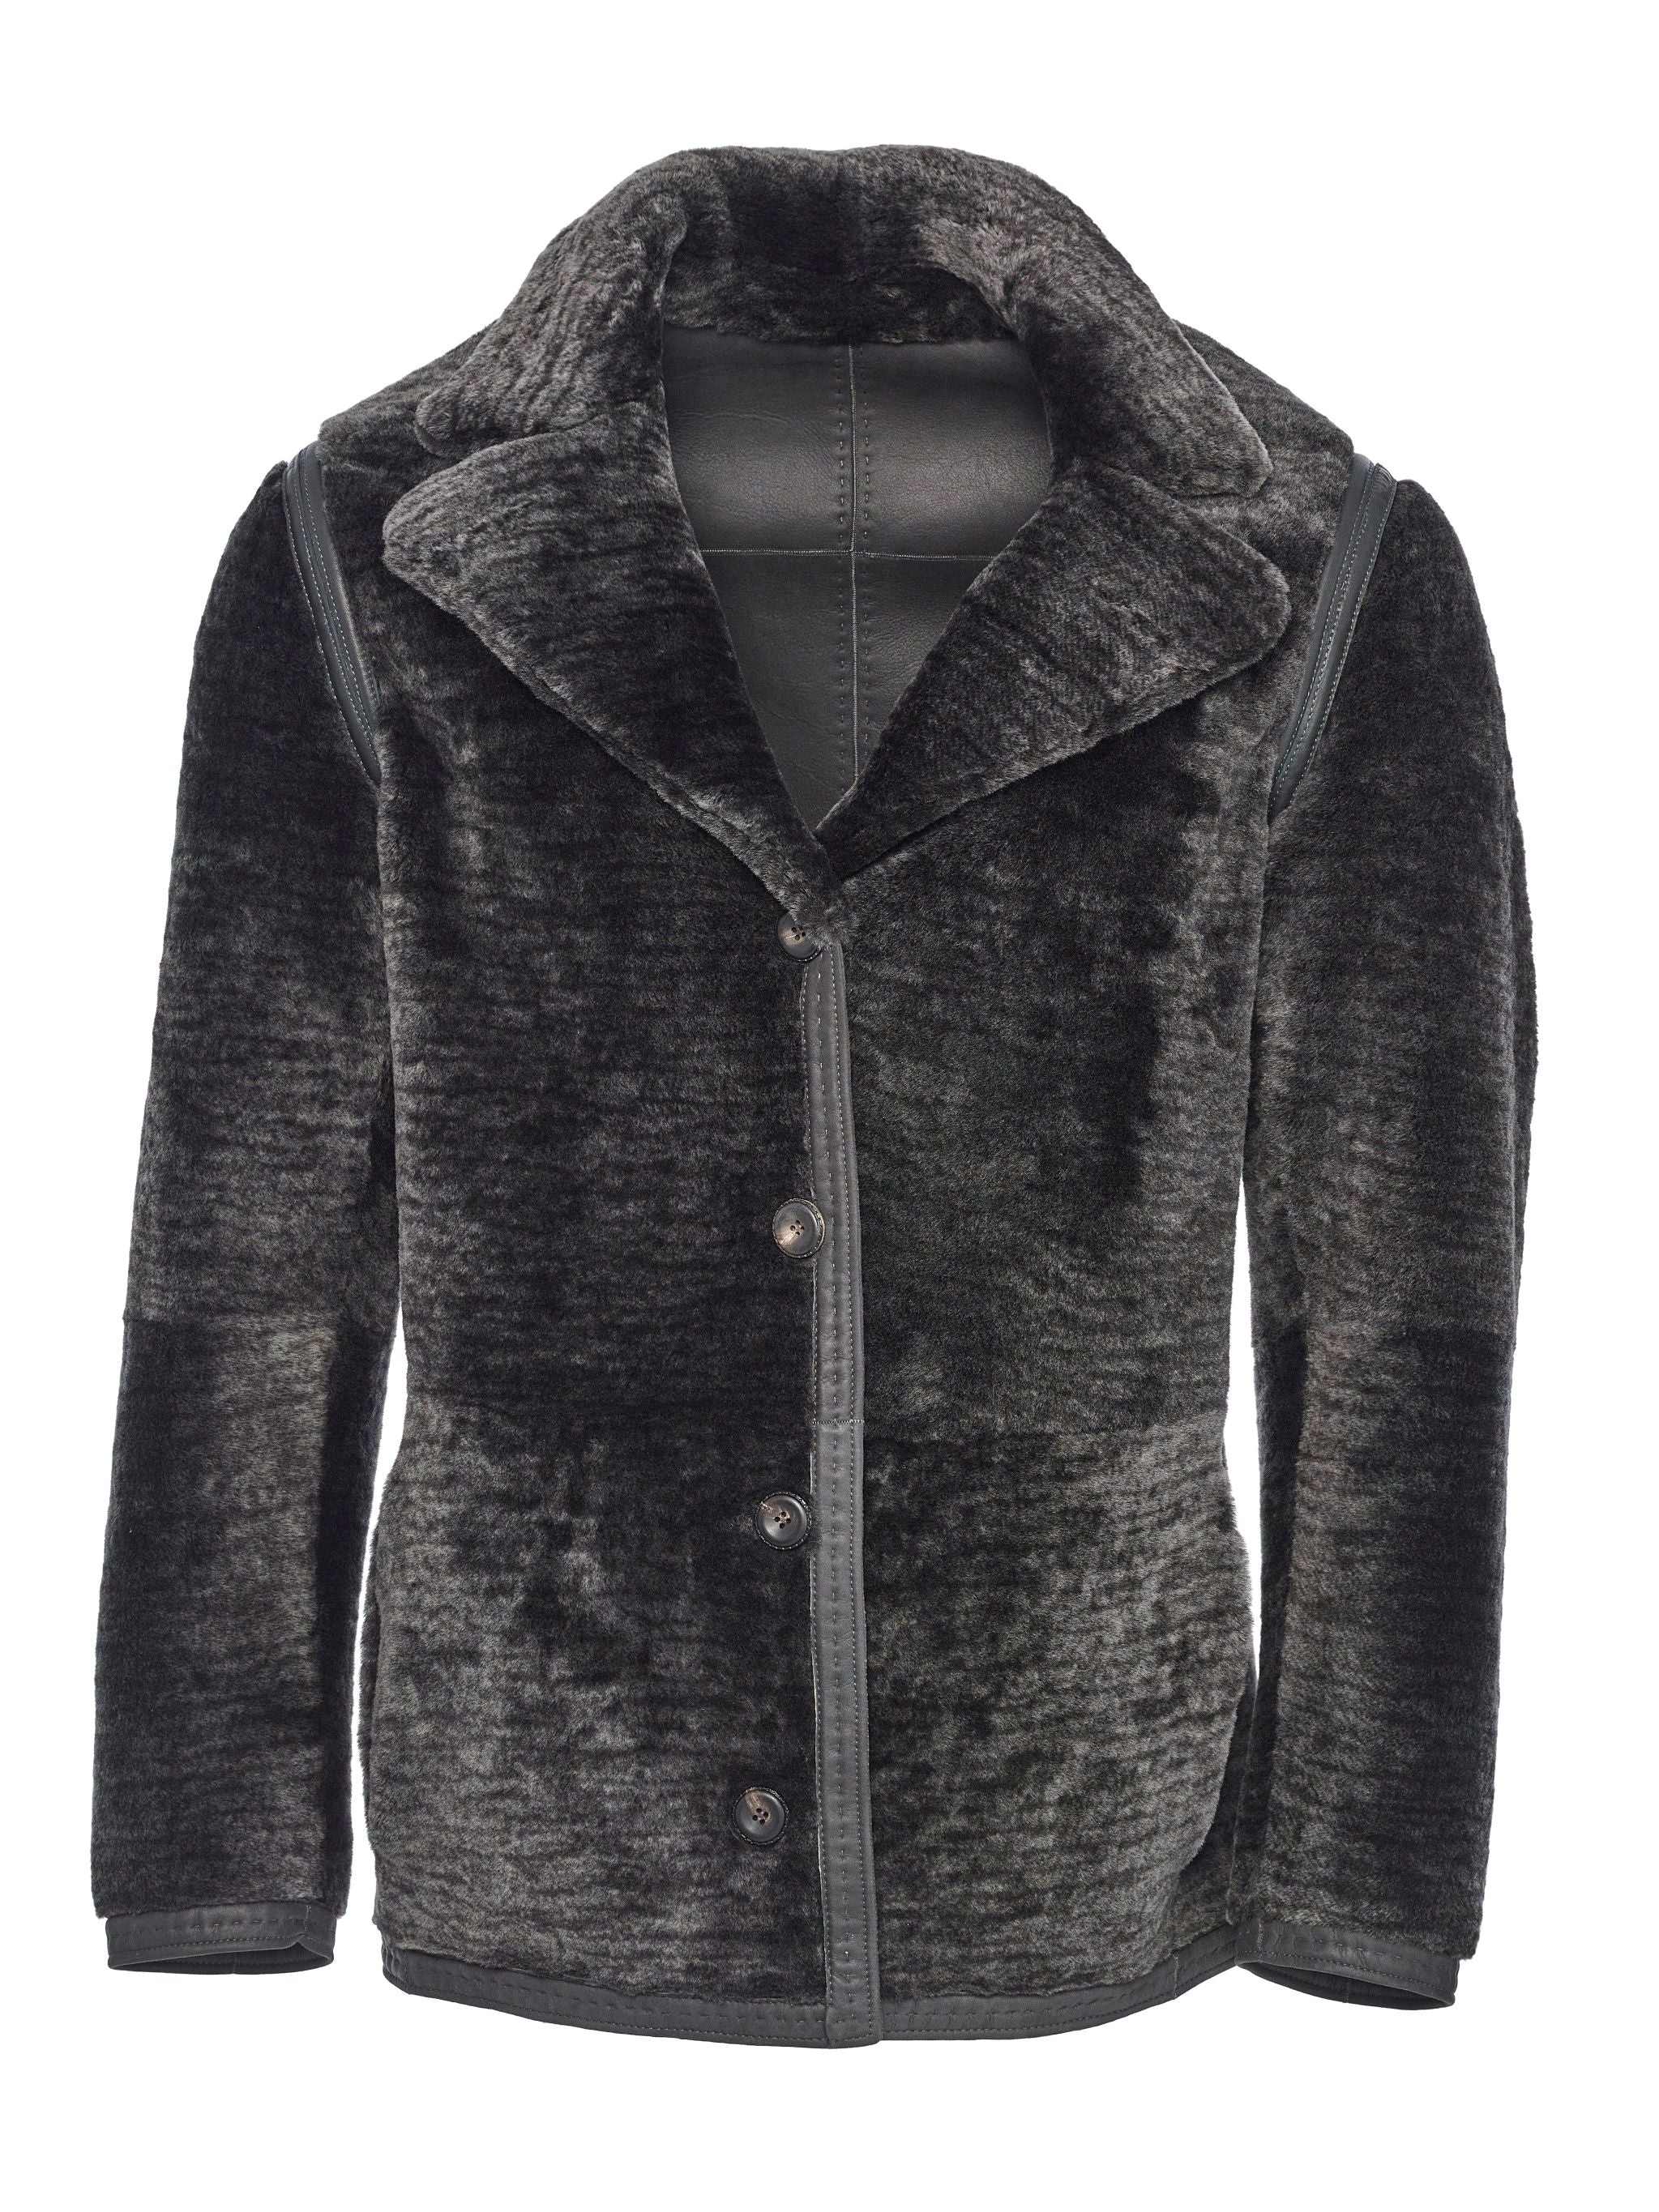 Reversible Spanish Lancon shearling with 4-artery track stitched nappa seams and horn buttons